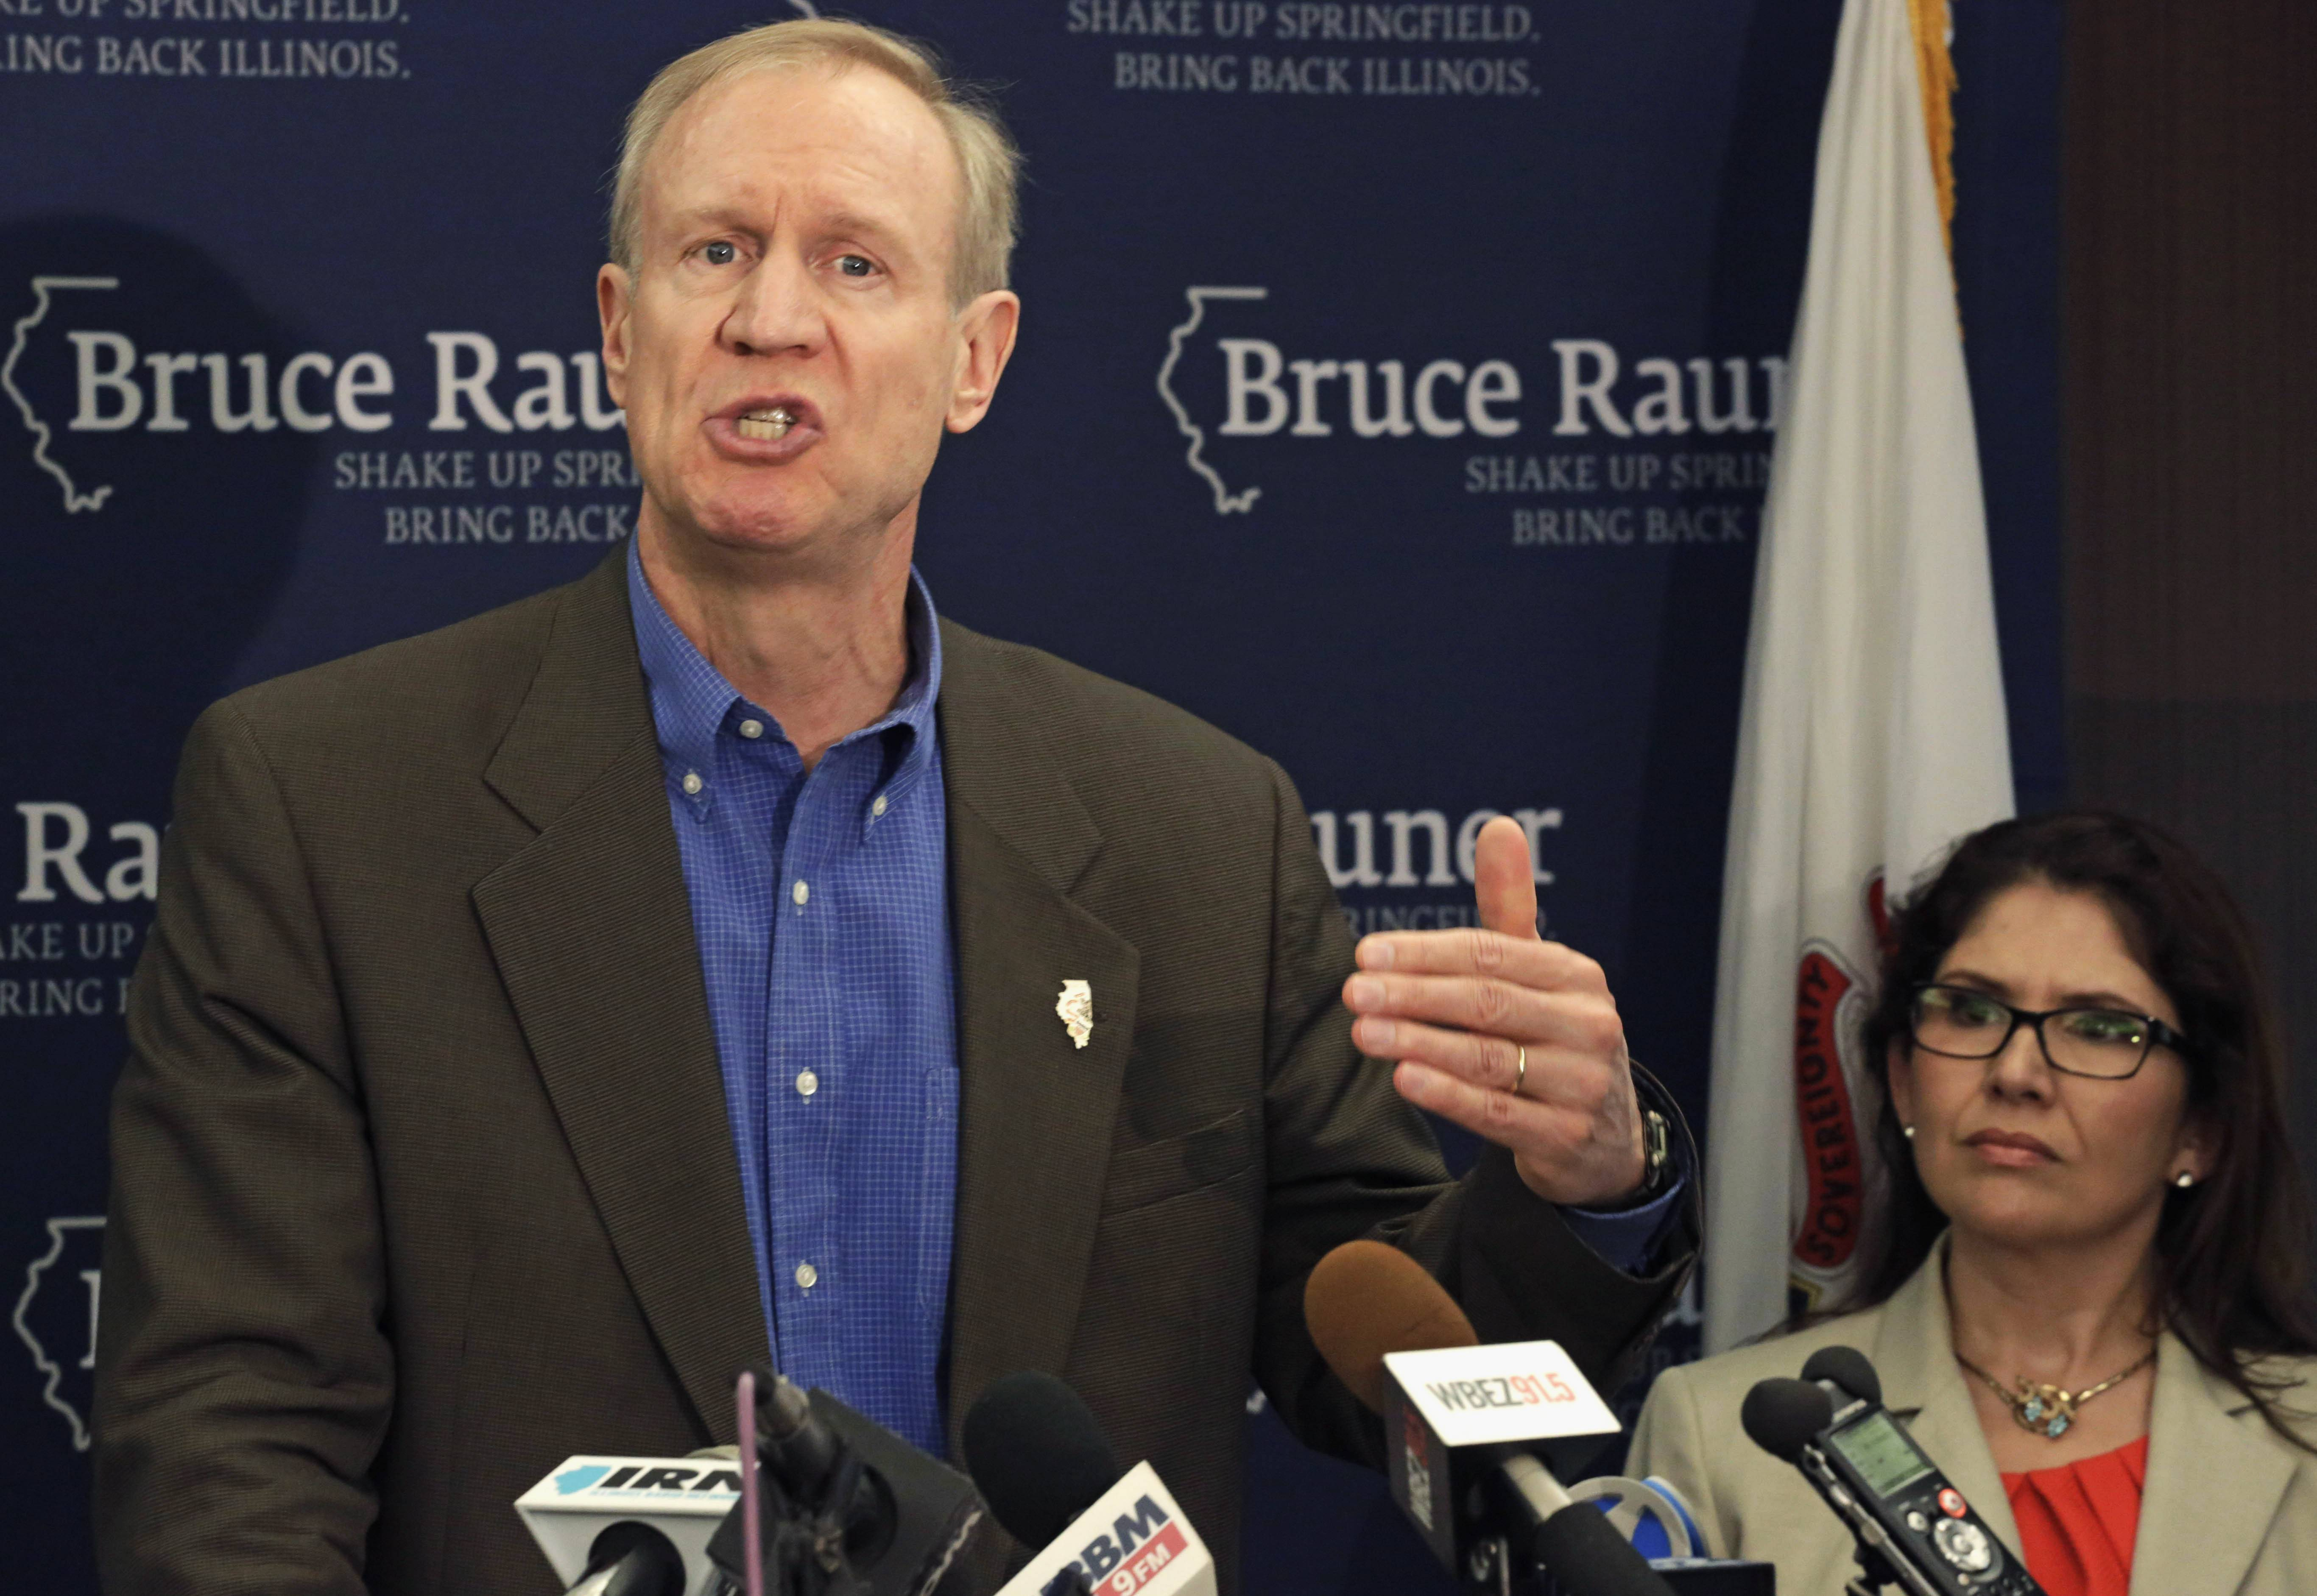 Republican gubernatorial candidate Bruce Rauner speaks at a news conference accompanied by his running mate, Wheaton's Evelyn Sanguinetti, earlier this month in Chicago.